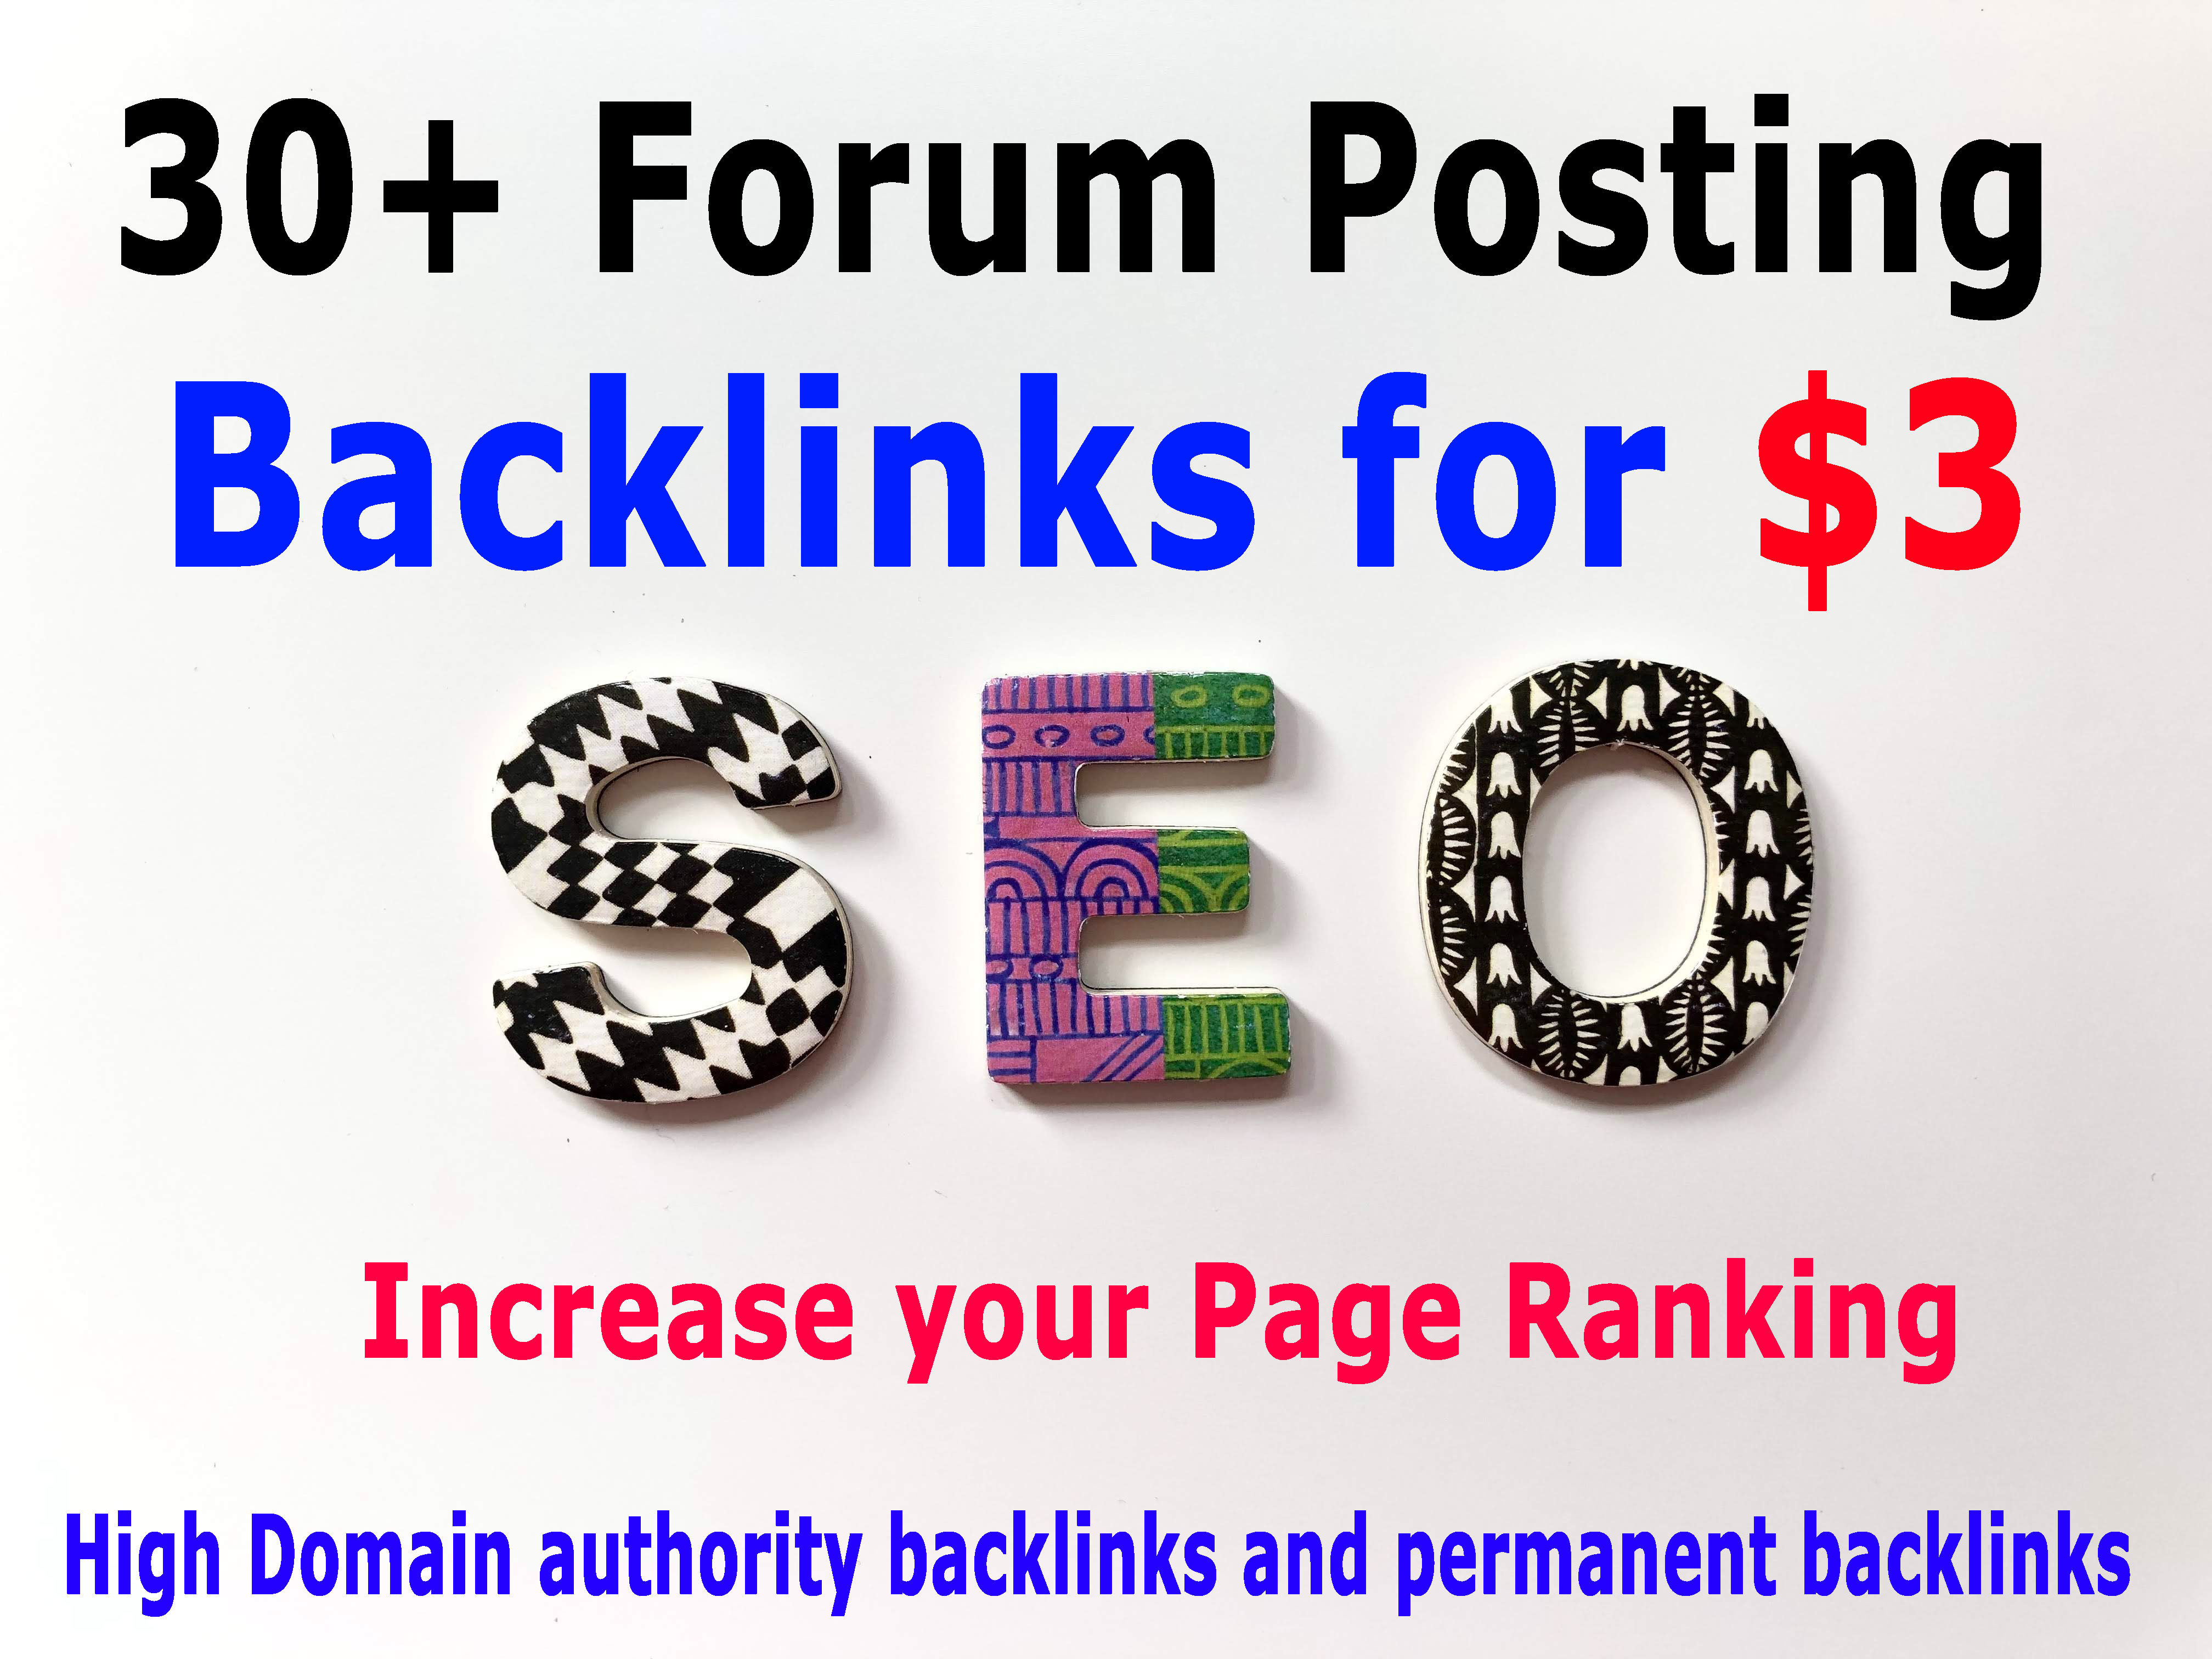 I will build 30+ quality forum posting backlinks